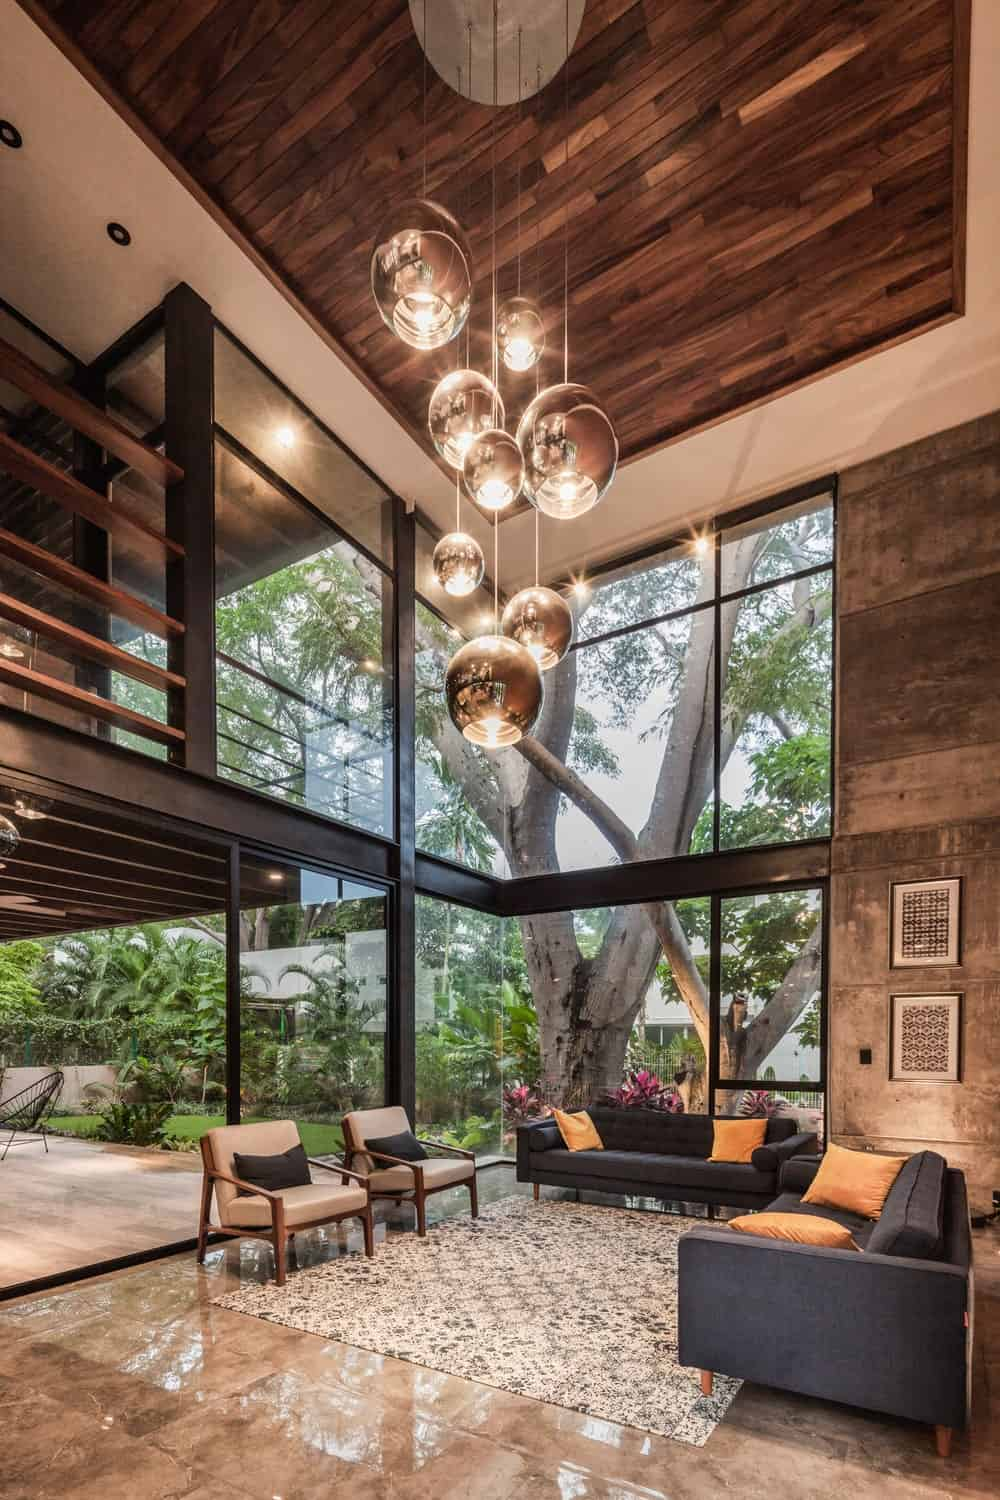 This is the warm glow of the living room that is complemented by the lush landscape just outside the glass walls.